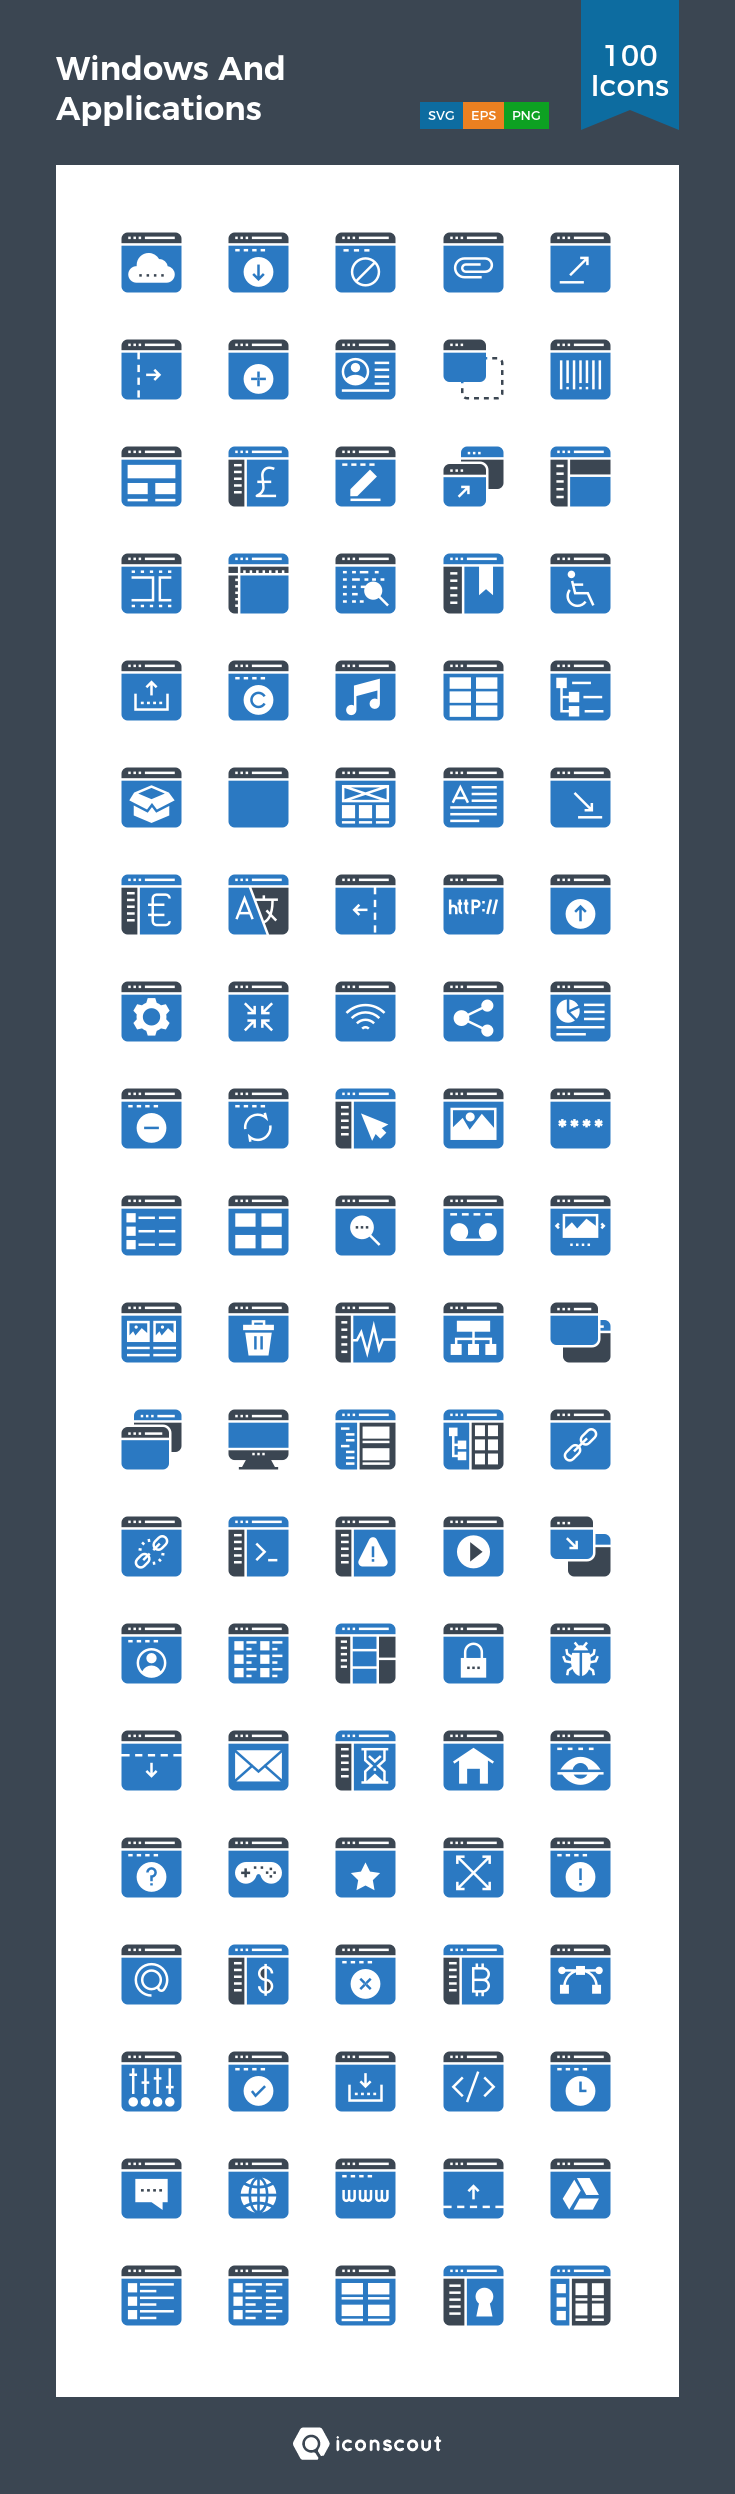 Windows And Applications Icon Pack - 100 Flat Icons   Design